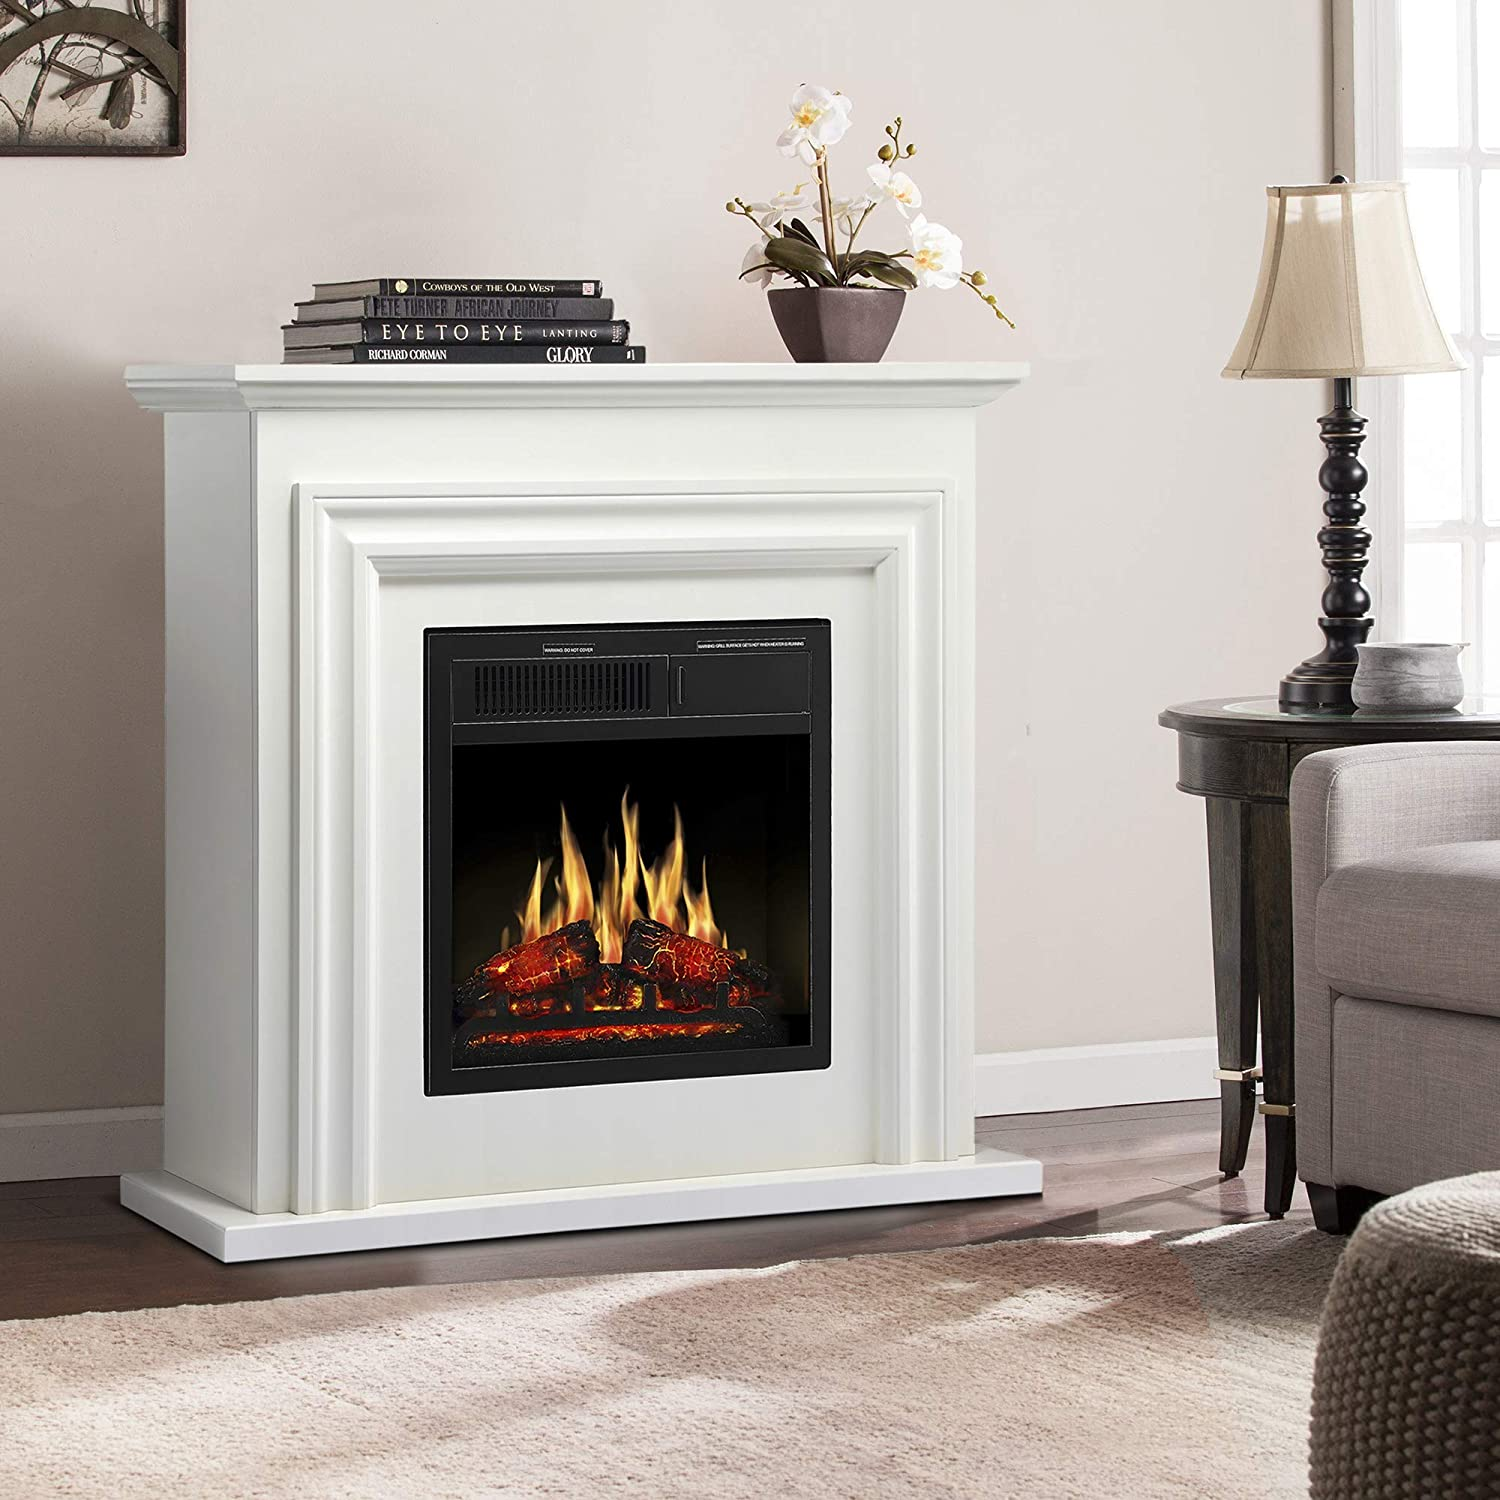 JAMFLY 36 Wood Electric Fireplace Mantel Package Freestanding Heater Corner Firebox with Log Hearth and Remote Control,750-1500W Ivory White Finish